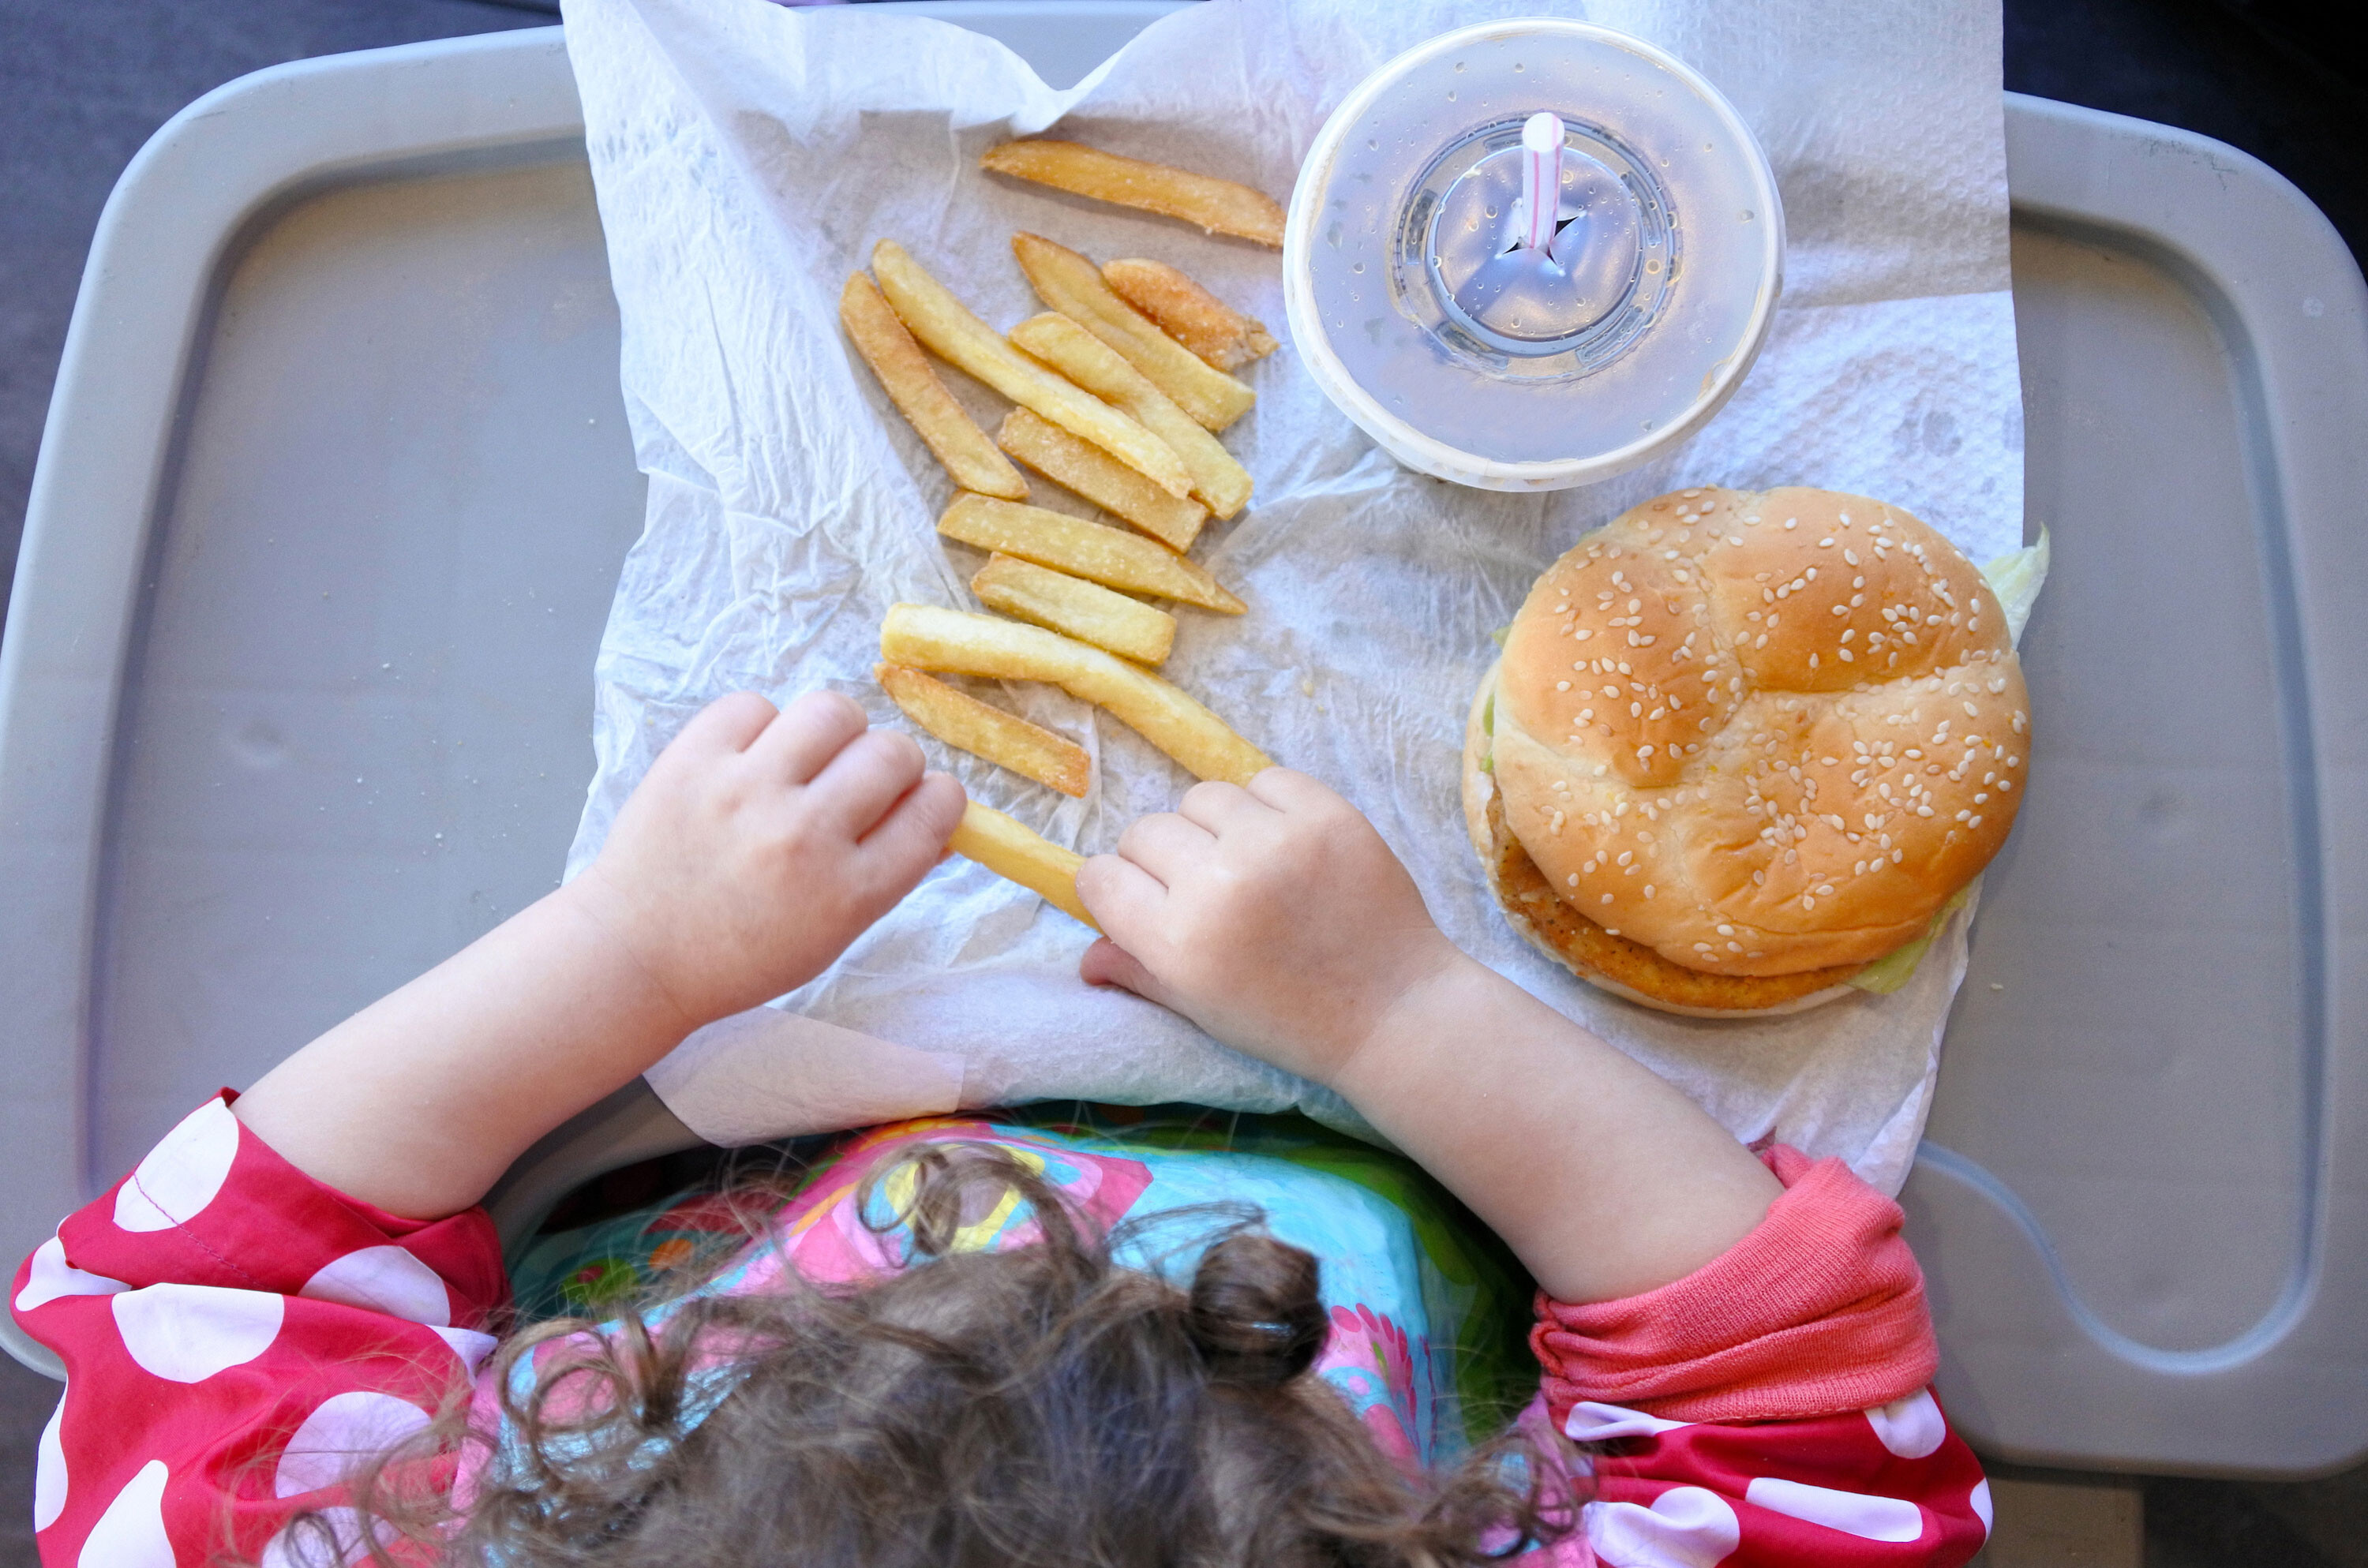 1 in 5 parents say their kids eat more fast food during the pandemic, poll finds